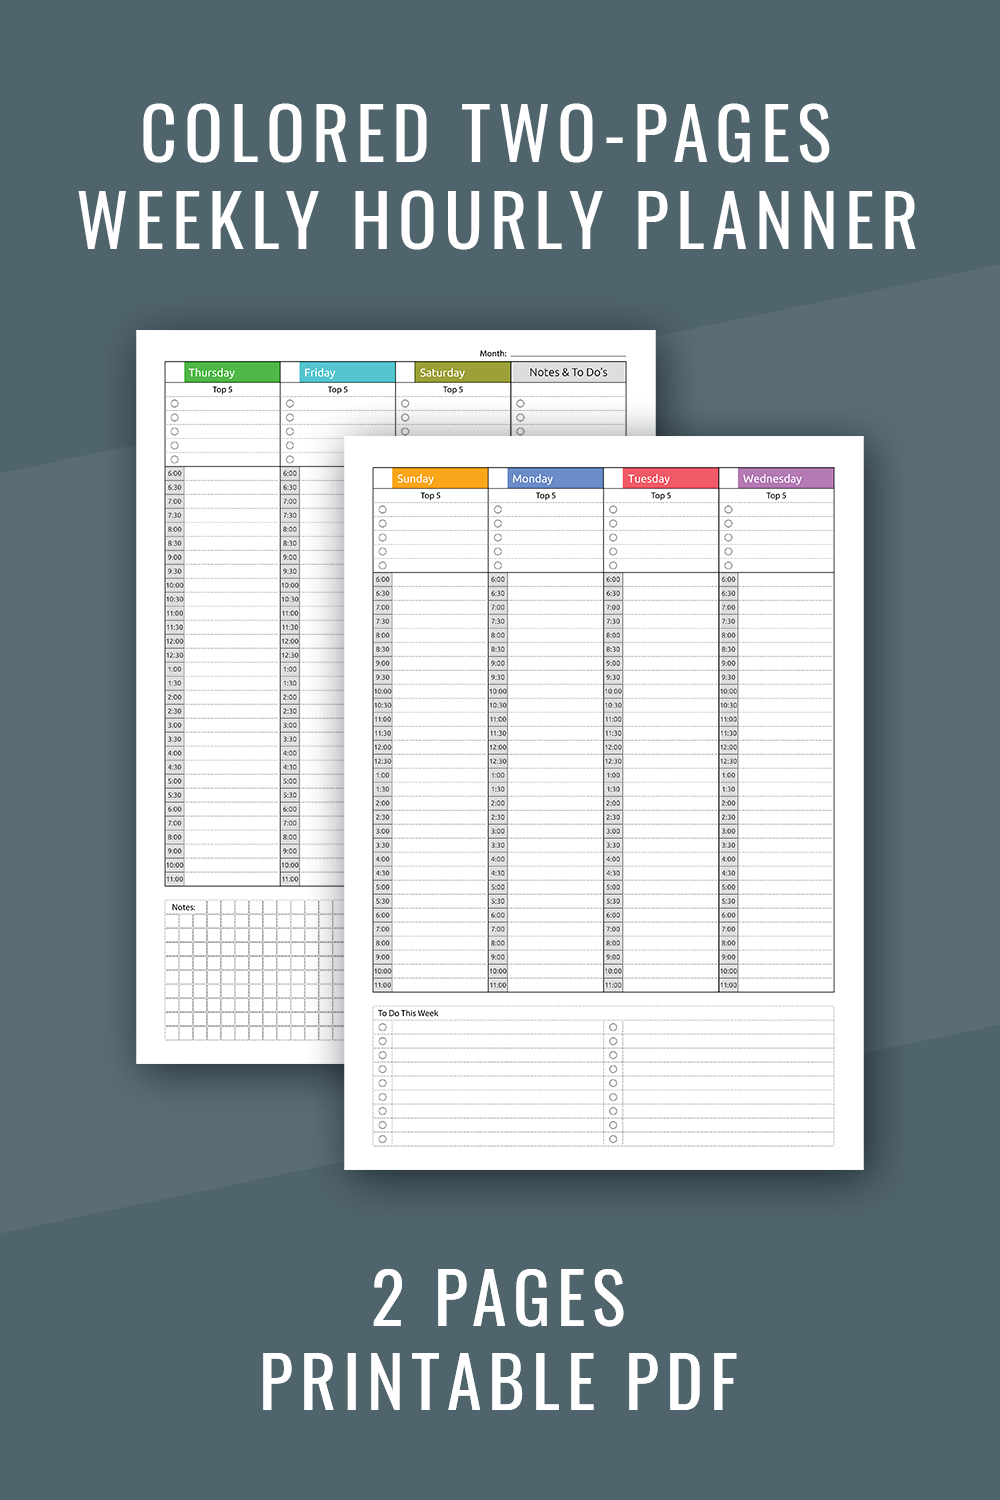 Printable Weekly Hourly Planner Pdf